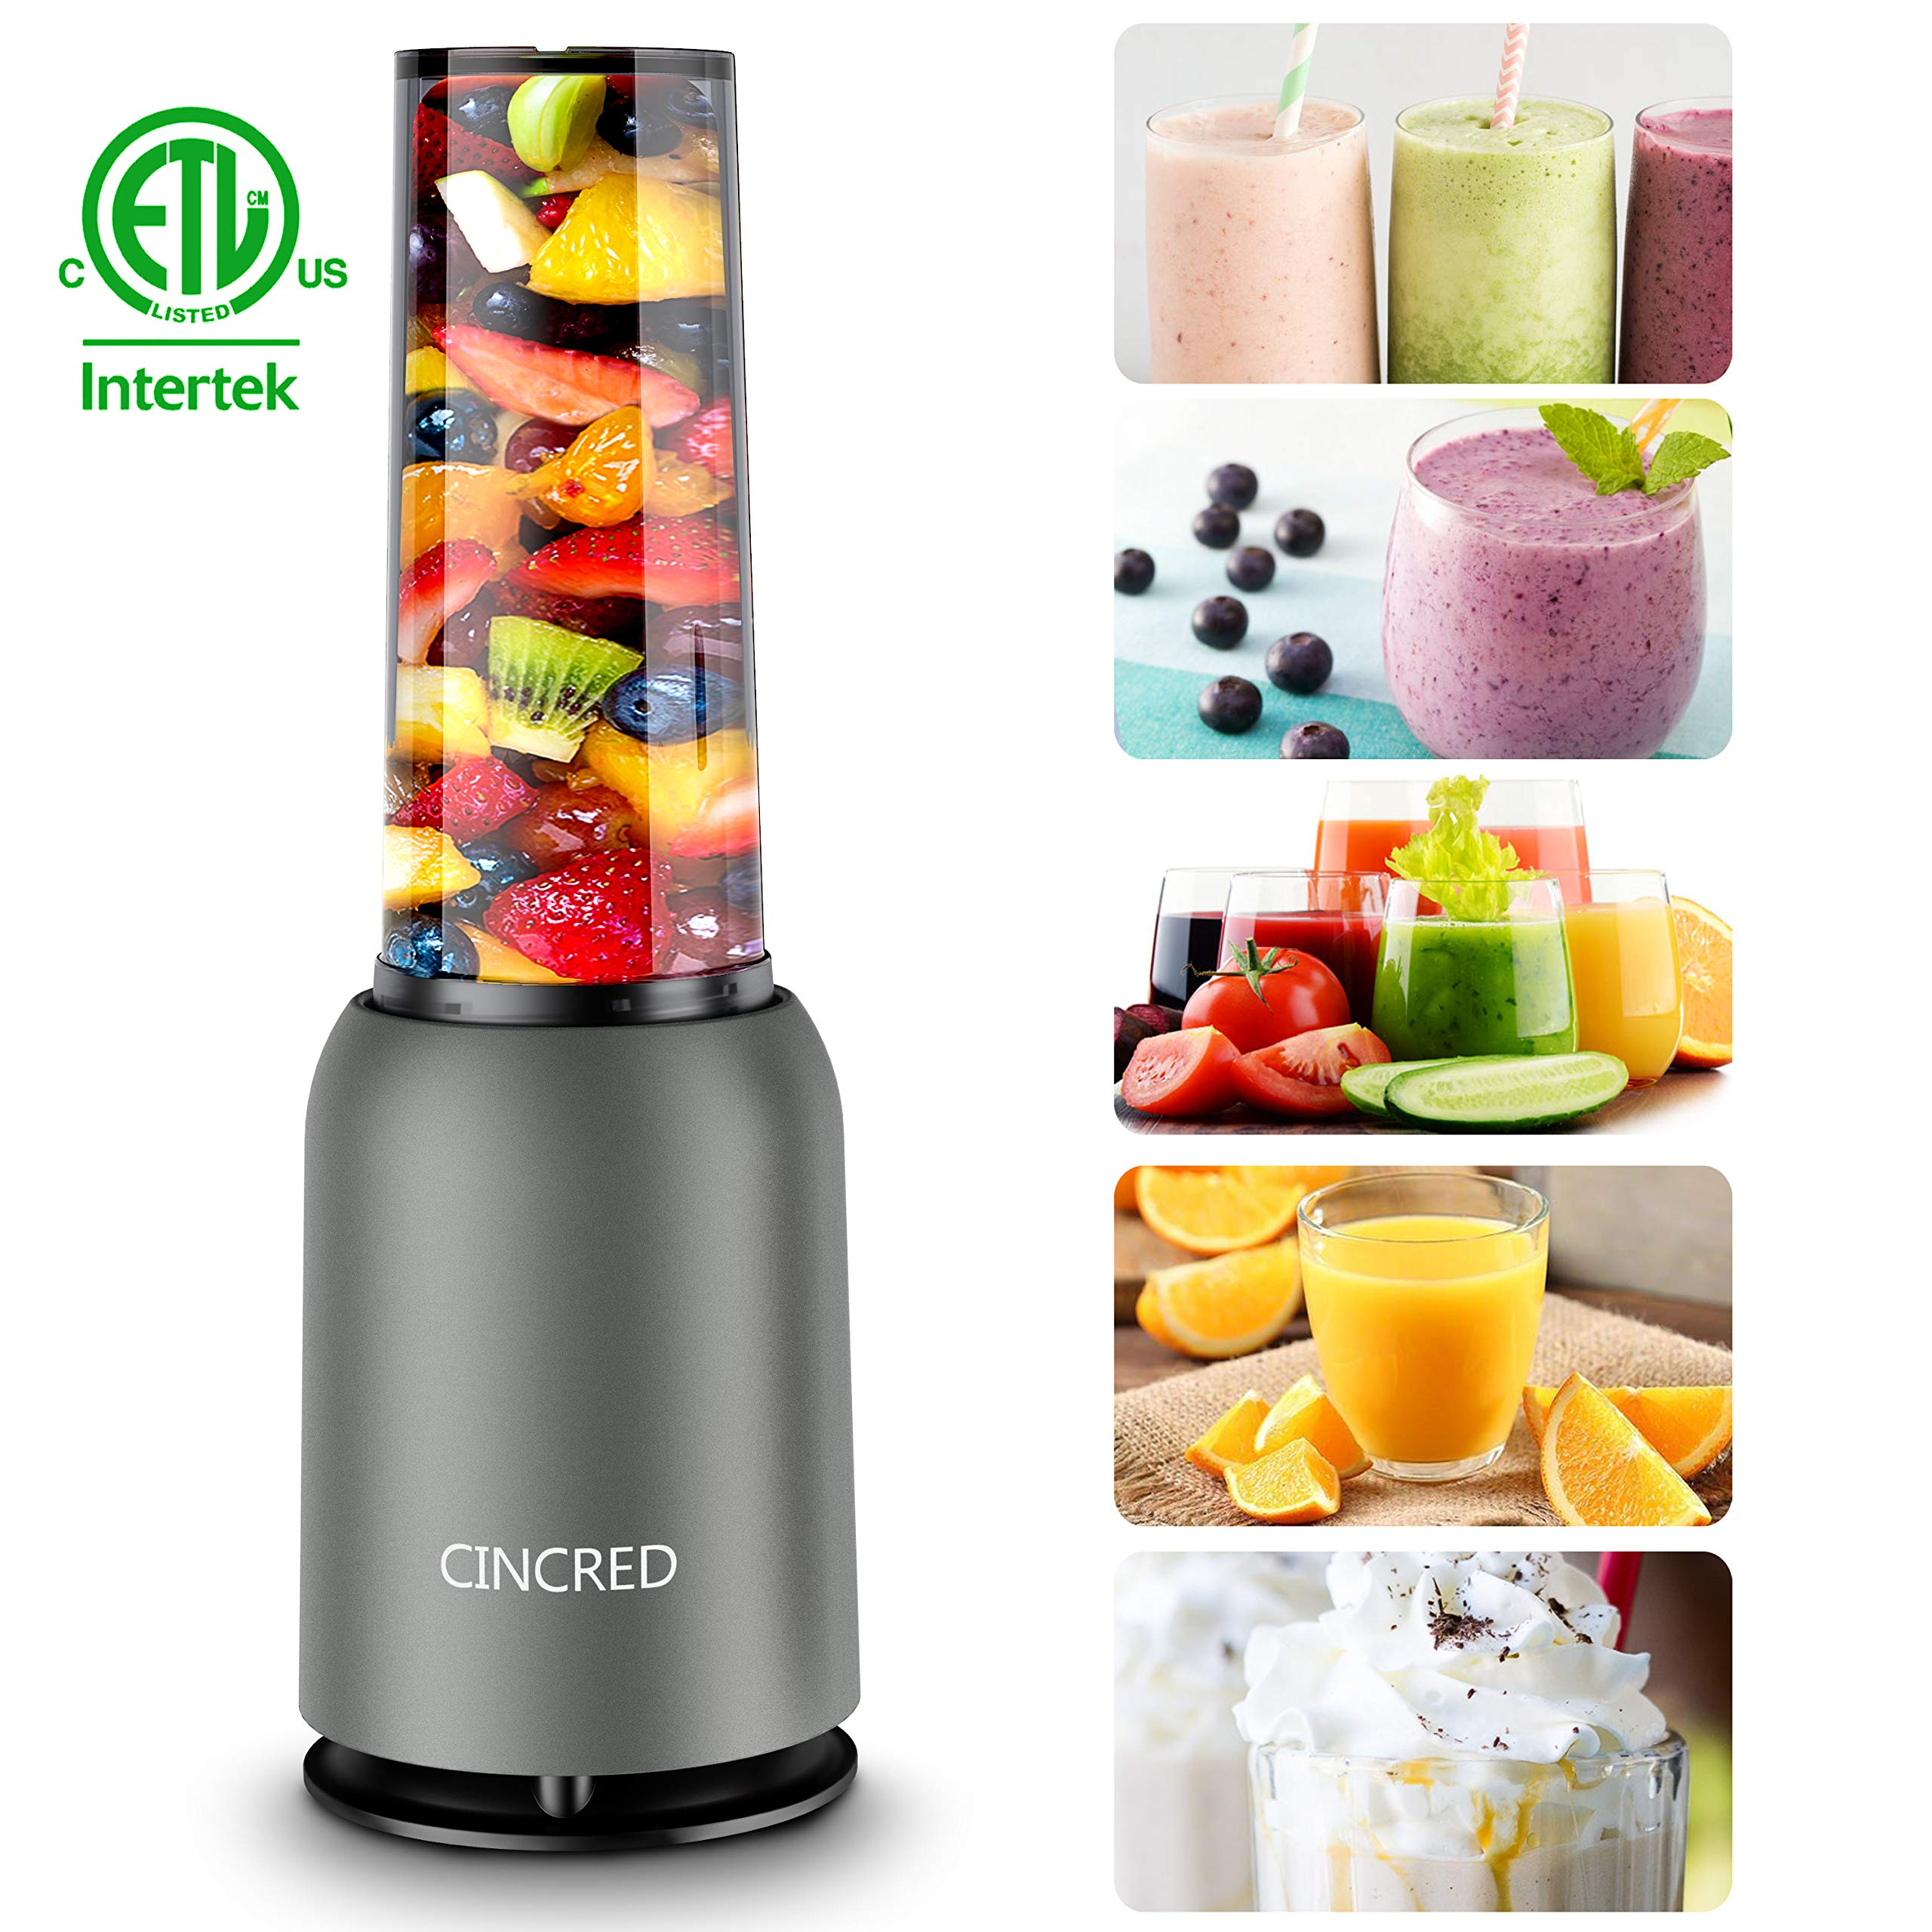 Updated 2019 Version Professional Personal Countertop Blender for Milkshake, Fruit Vegetables Drinks, Ice, Small Mini Portable Single Food Bullet Blenders Processor Shake Mixer Maker with Cup for Home Kitchen,15 Ounce